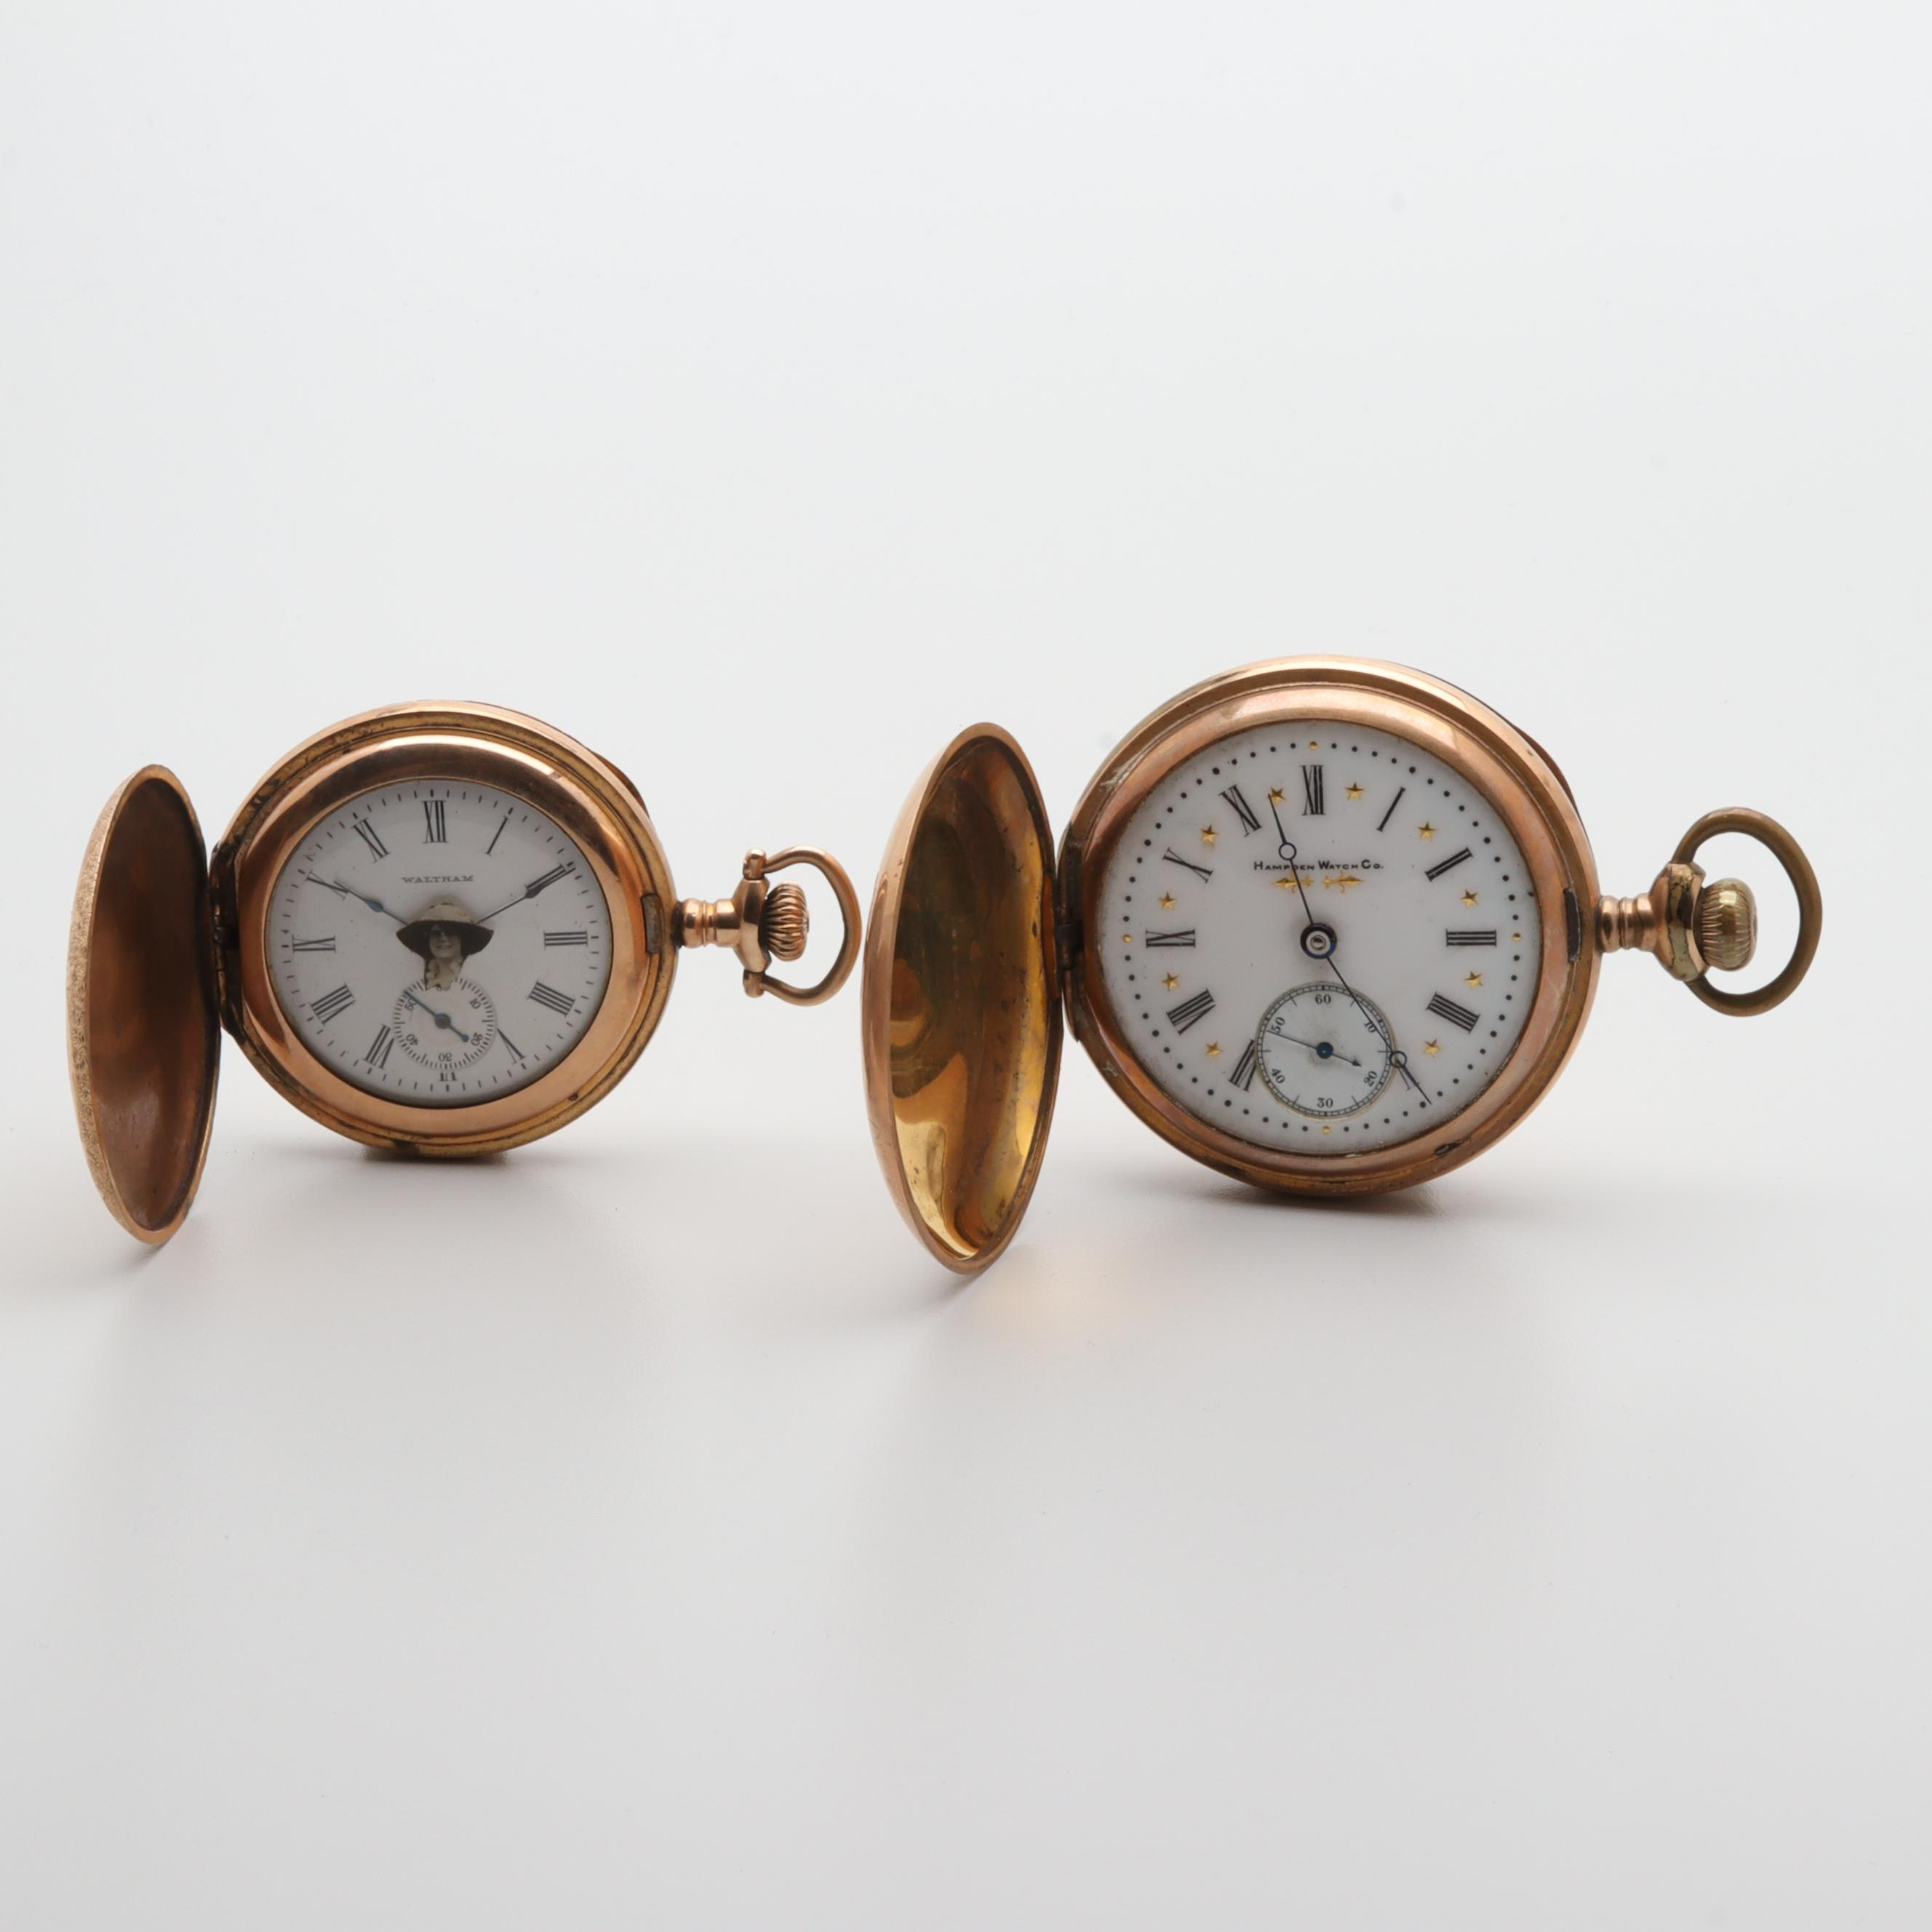 Antique Waltham and Hampden Watch Co. Pocket Watches